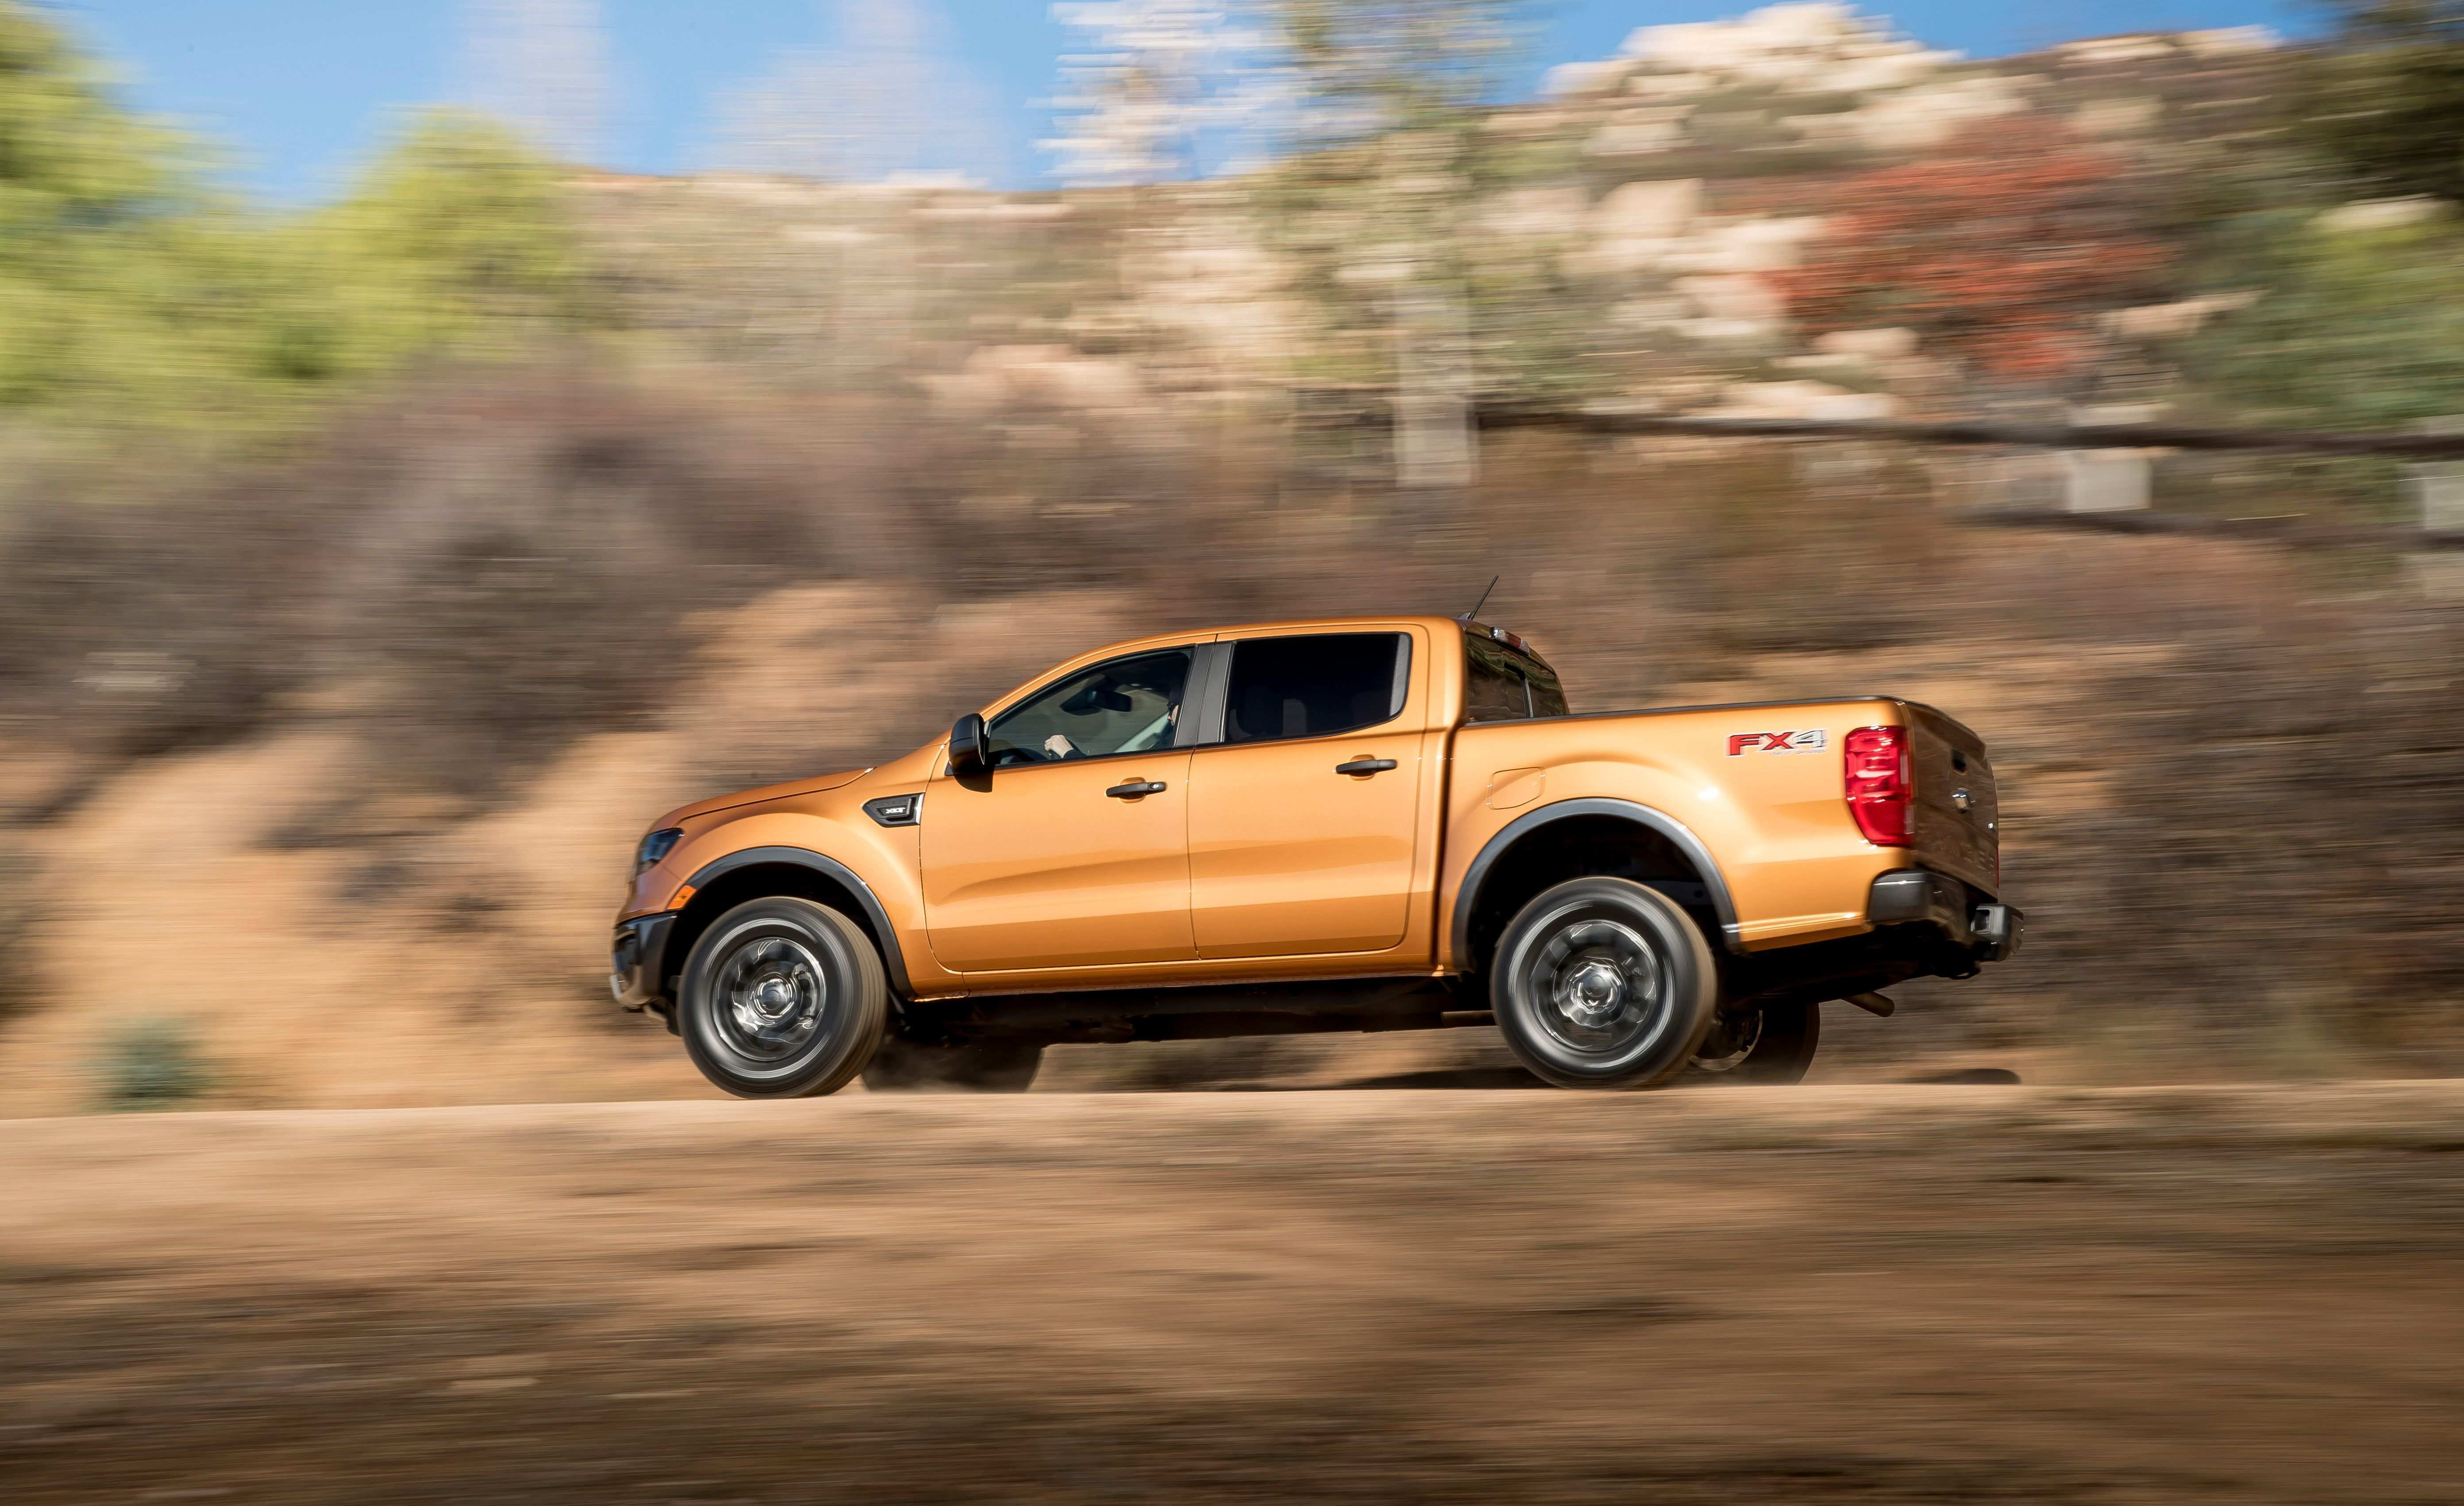 51 All New Ford Wildtrak 2019 Review Redesign And Price Interior for Ford Wildtrak 2019 Review Redesign And Price